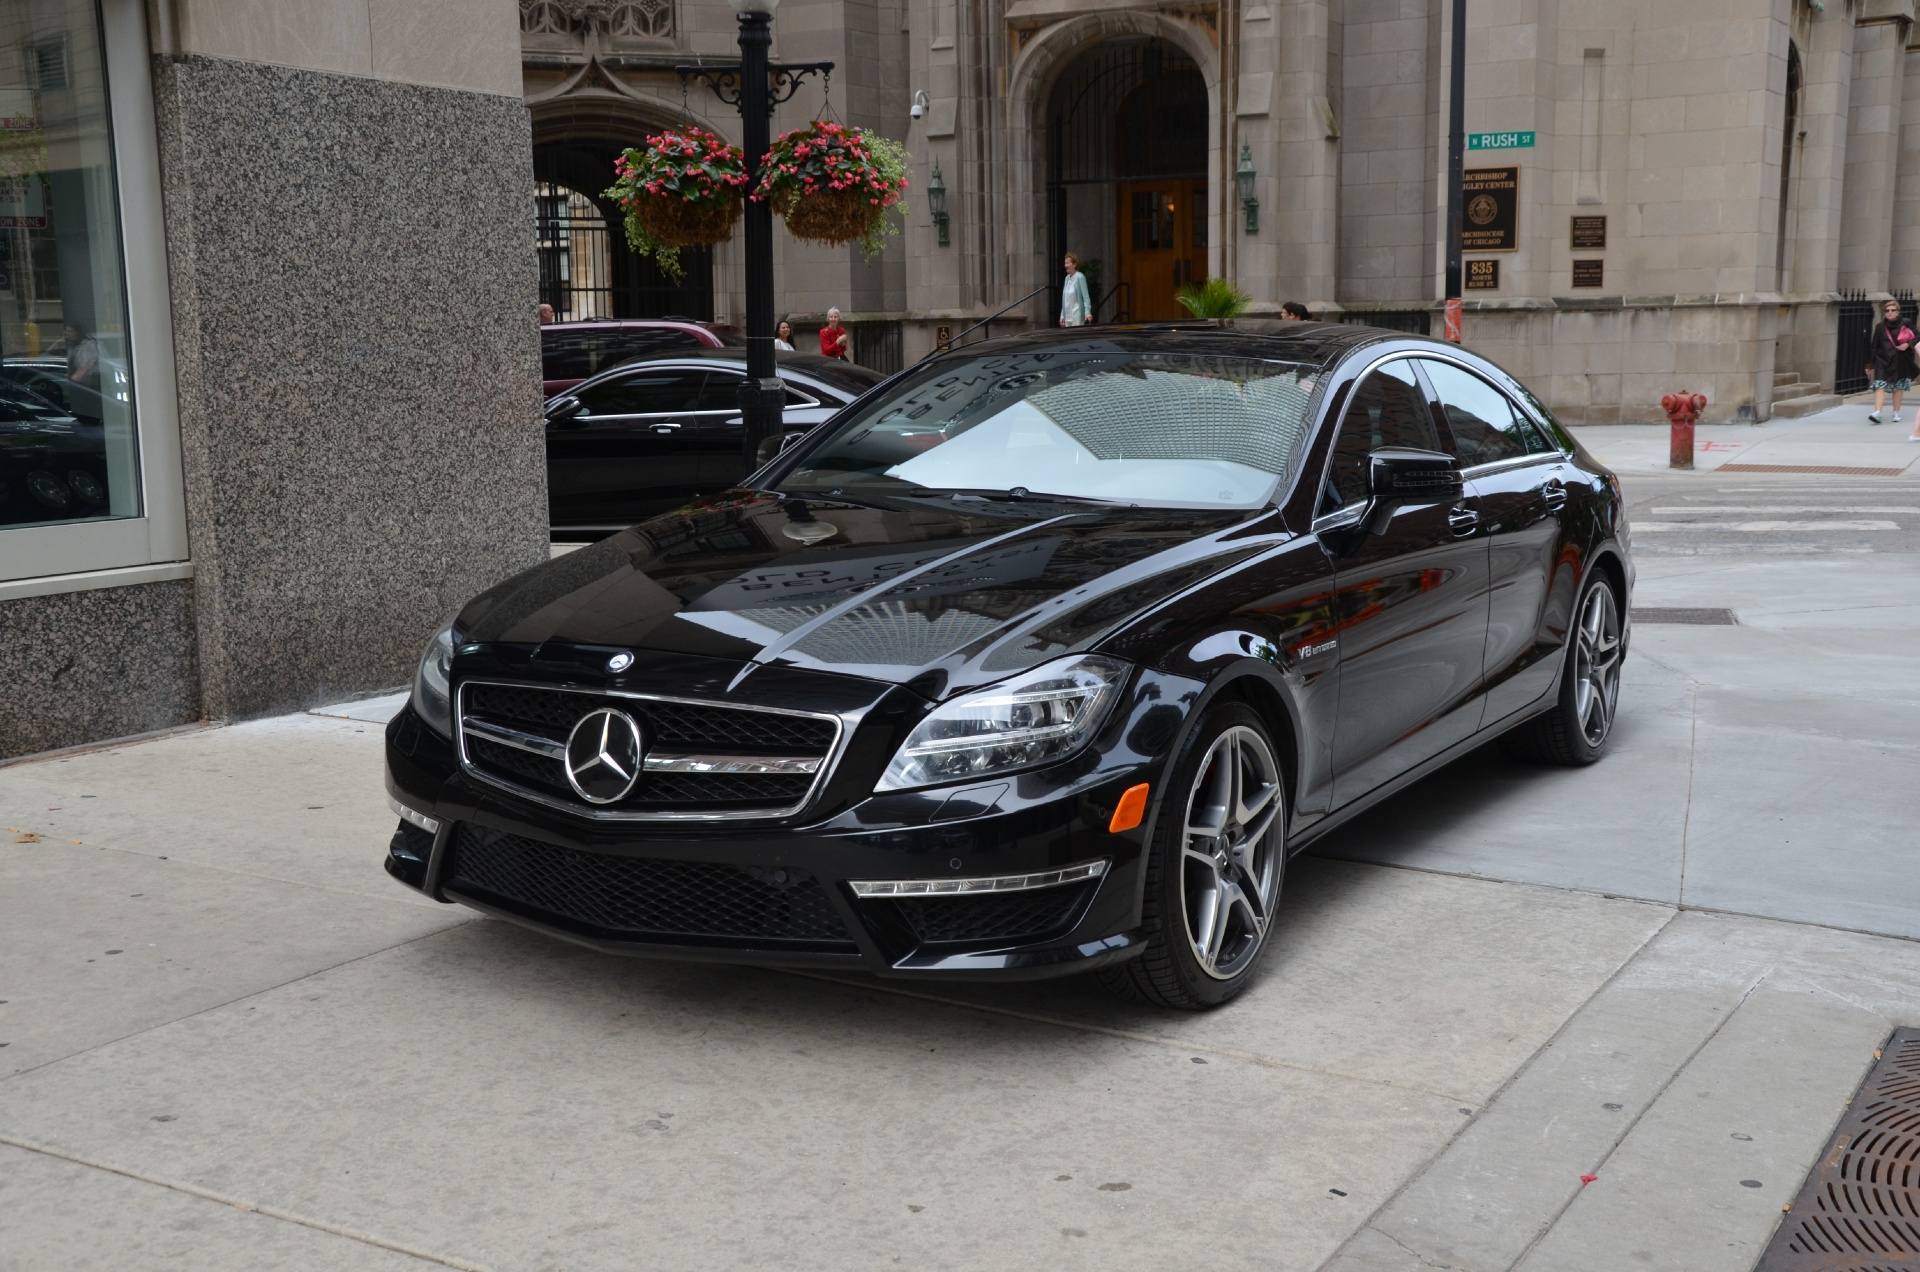 2013 mercedes benz cls class cls63 amg used bentley for 2013 mercedes benz cls 63 amg